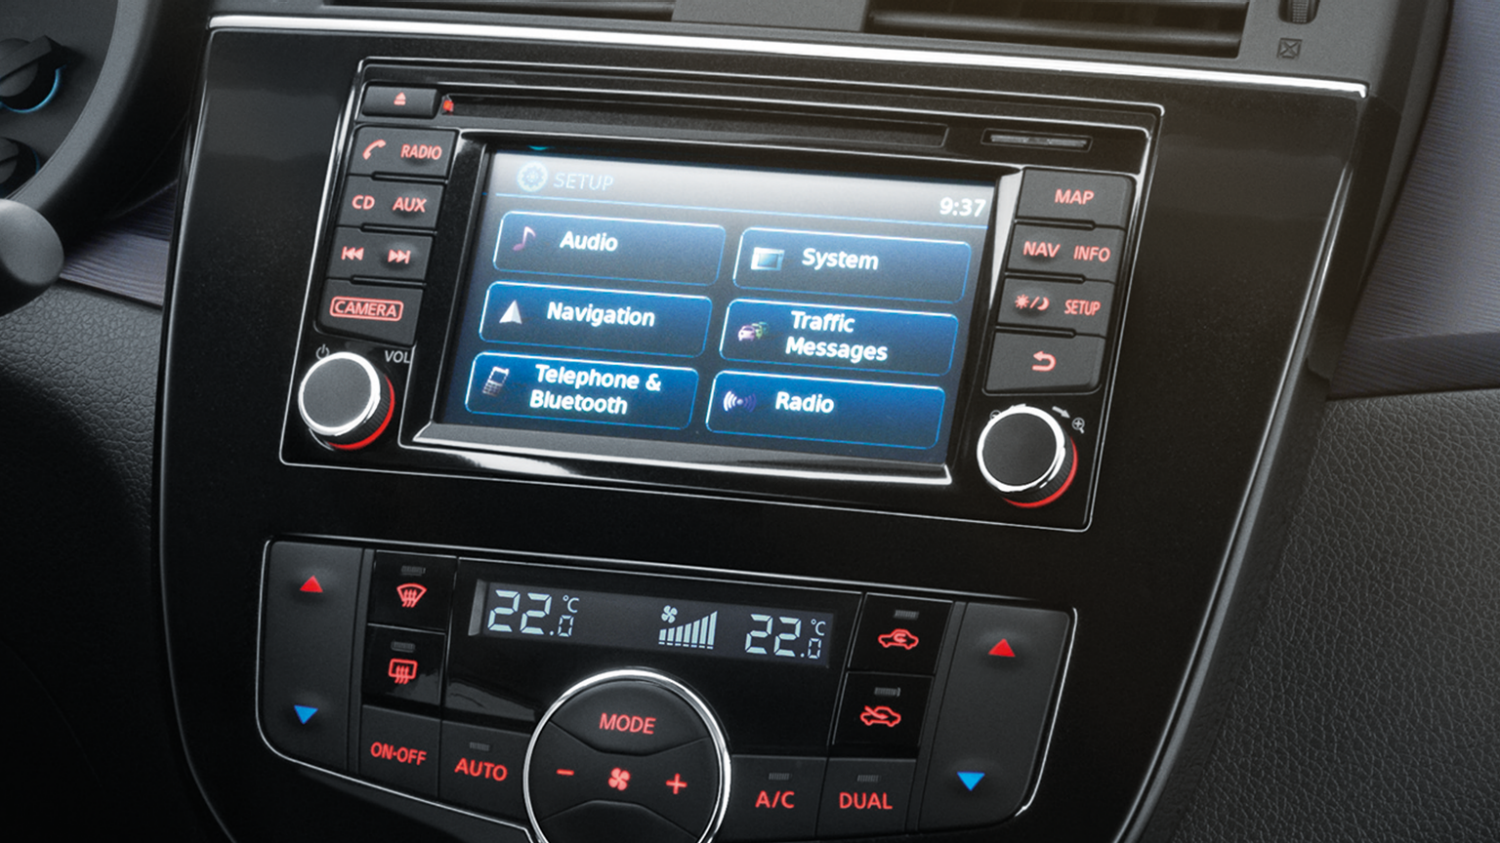 Nissan PULSAR berlina - Touch screen a colori da 5,8""